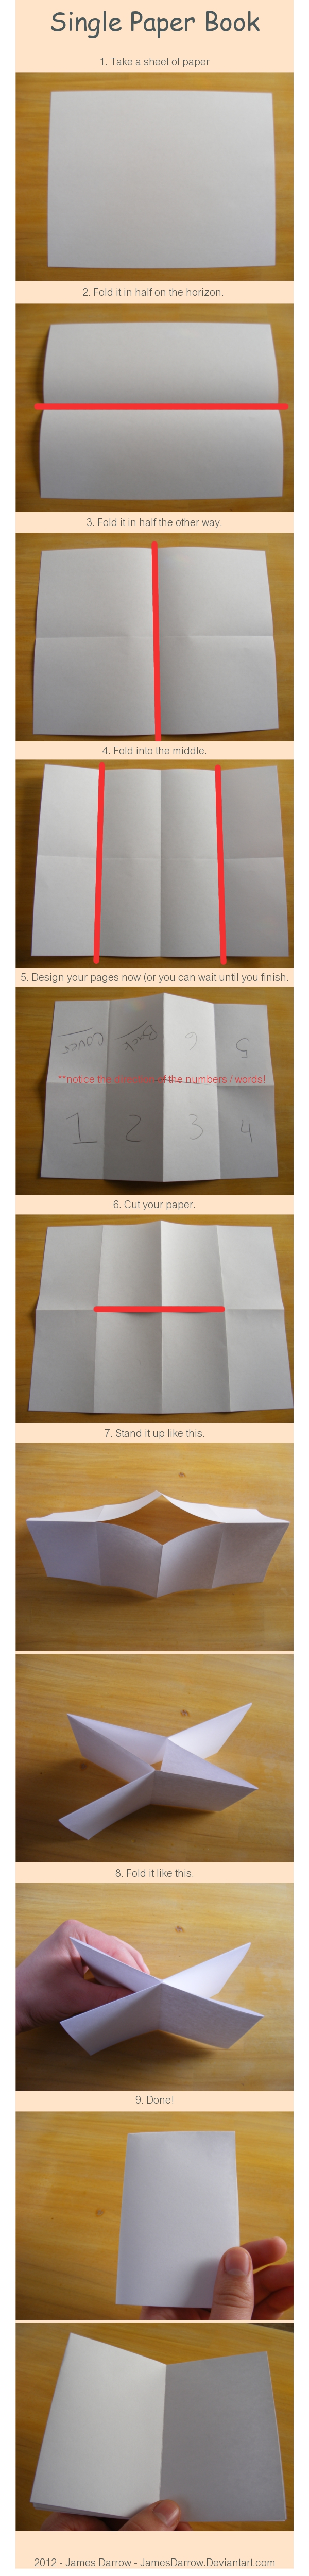 How To Make A Book Mini : How to make a foldable mini book from one sheet of paper